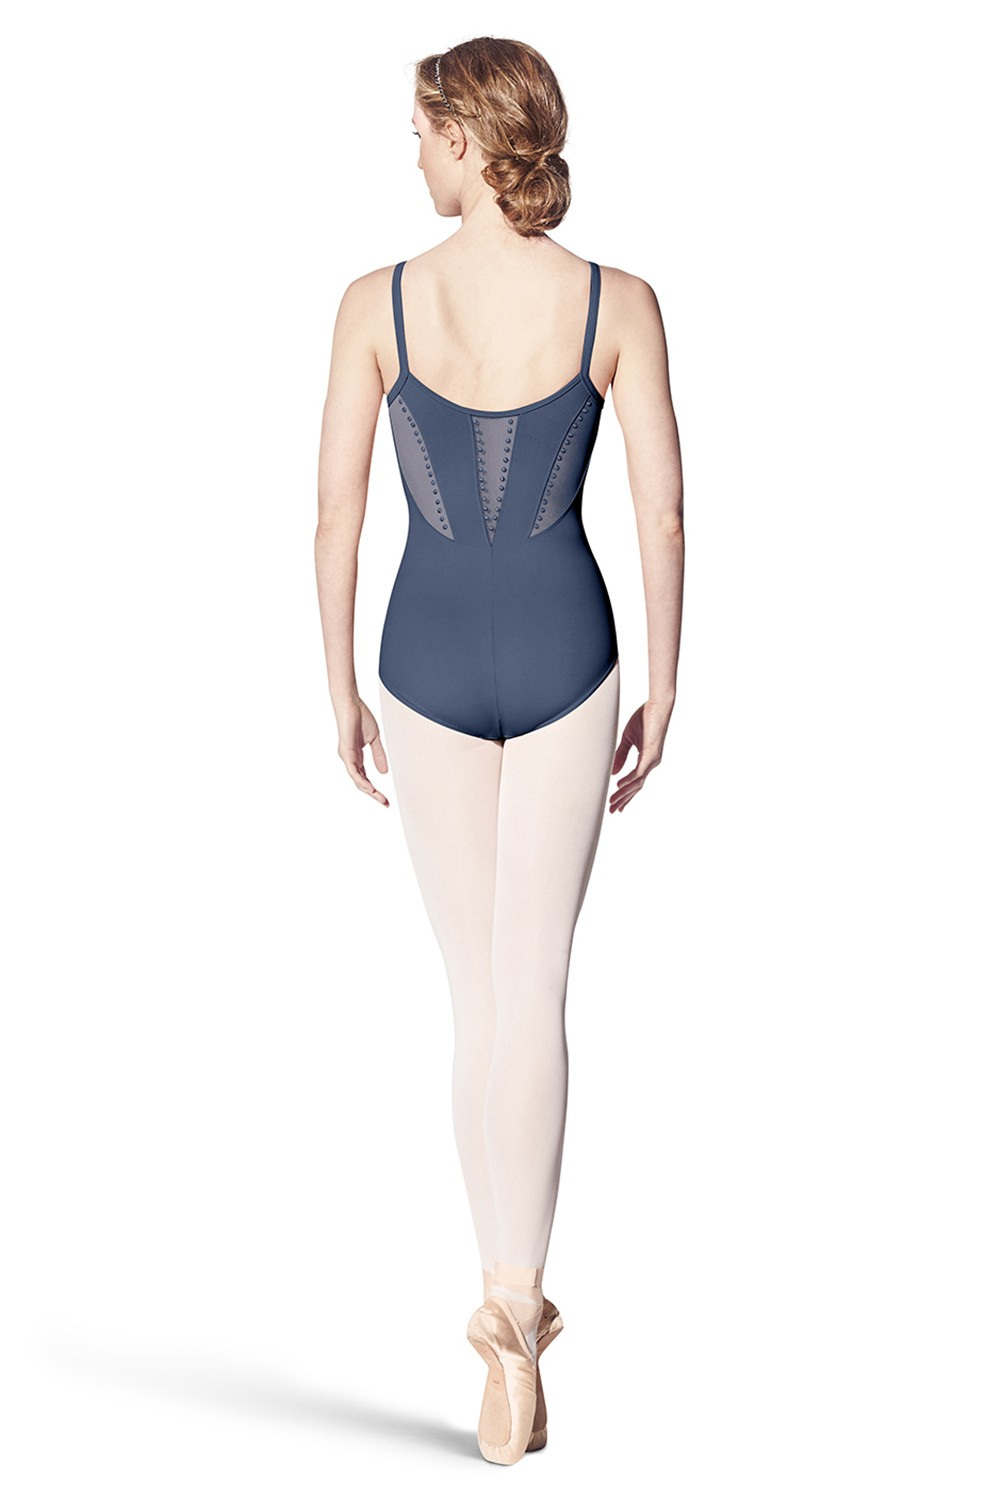 Adalie Women's Dance Leotards